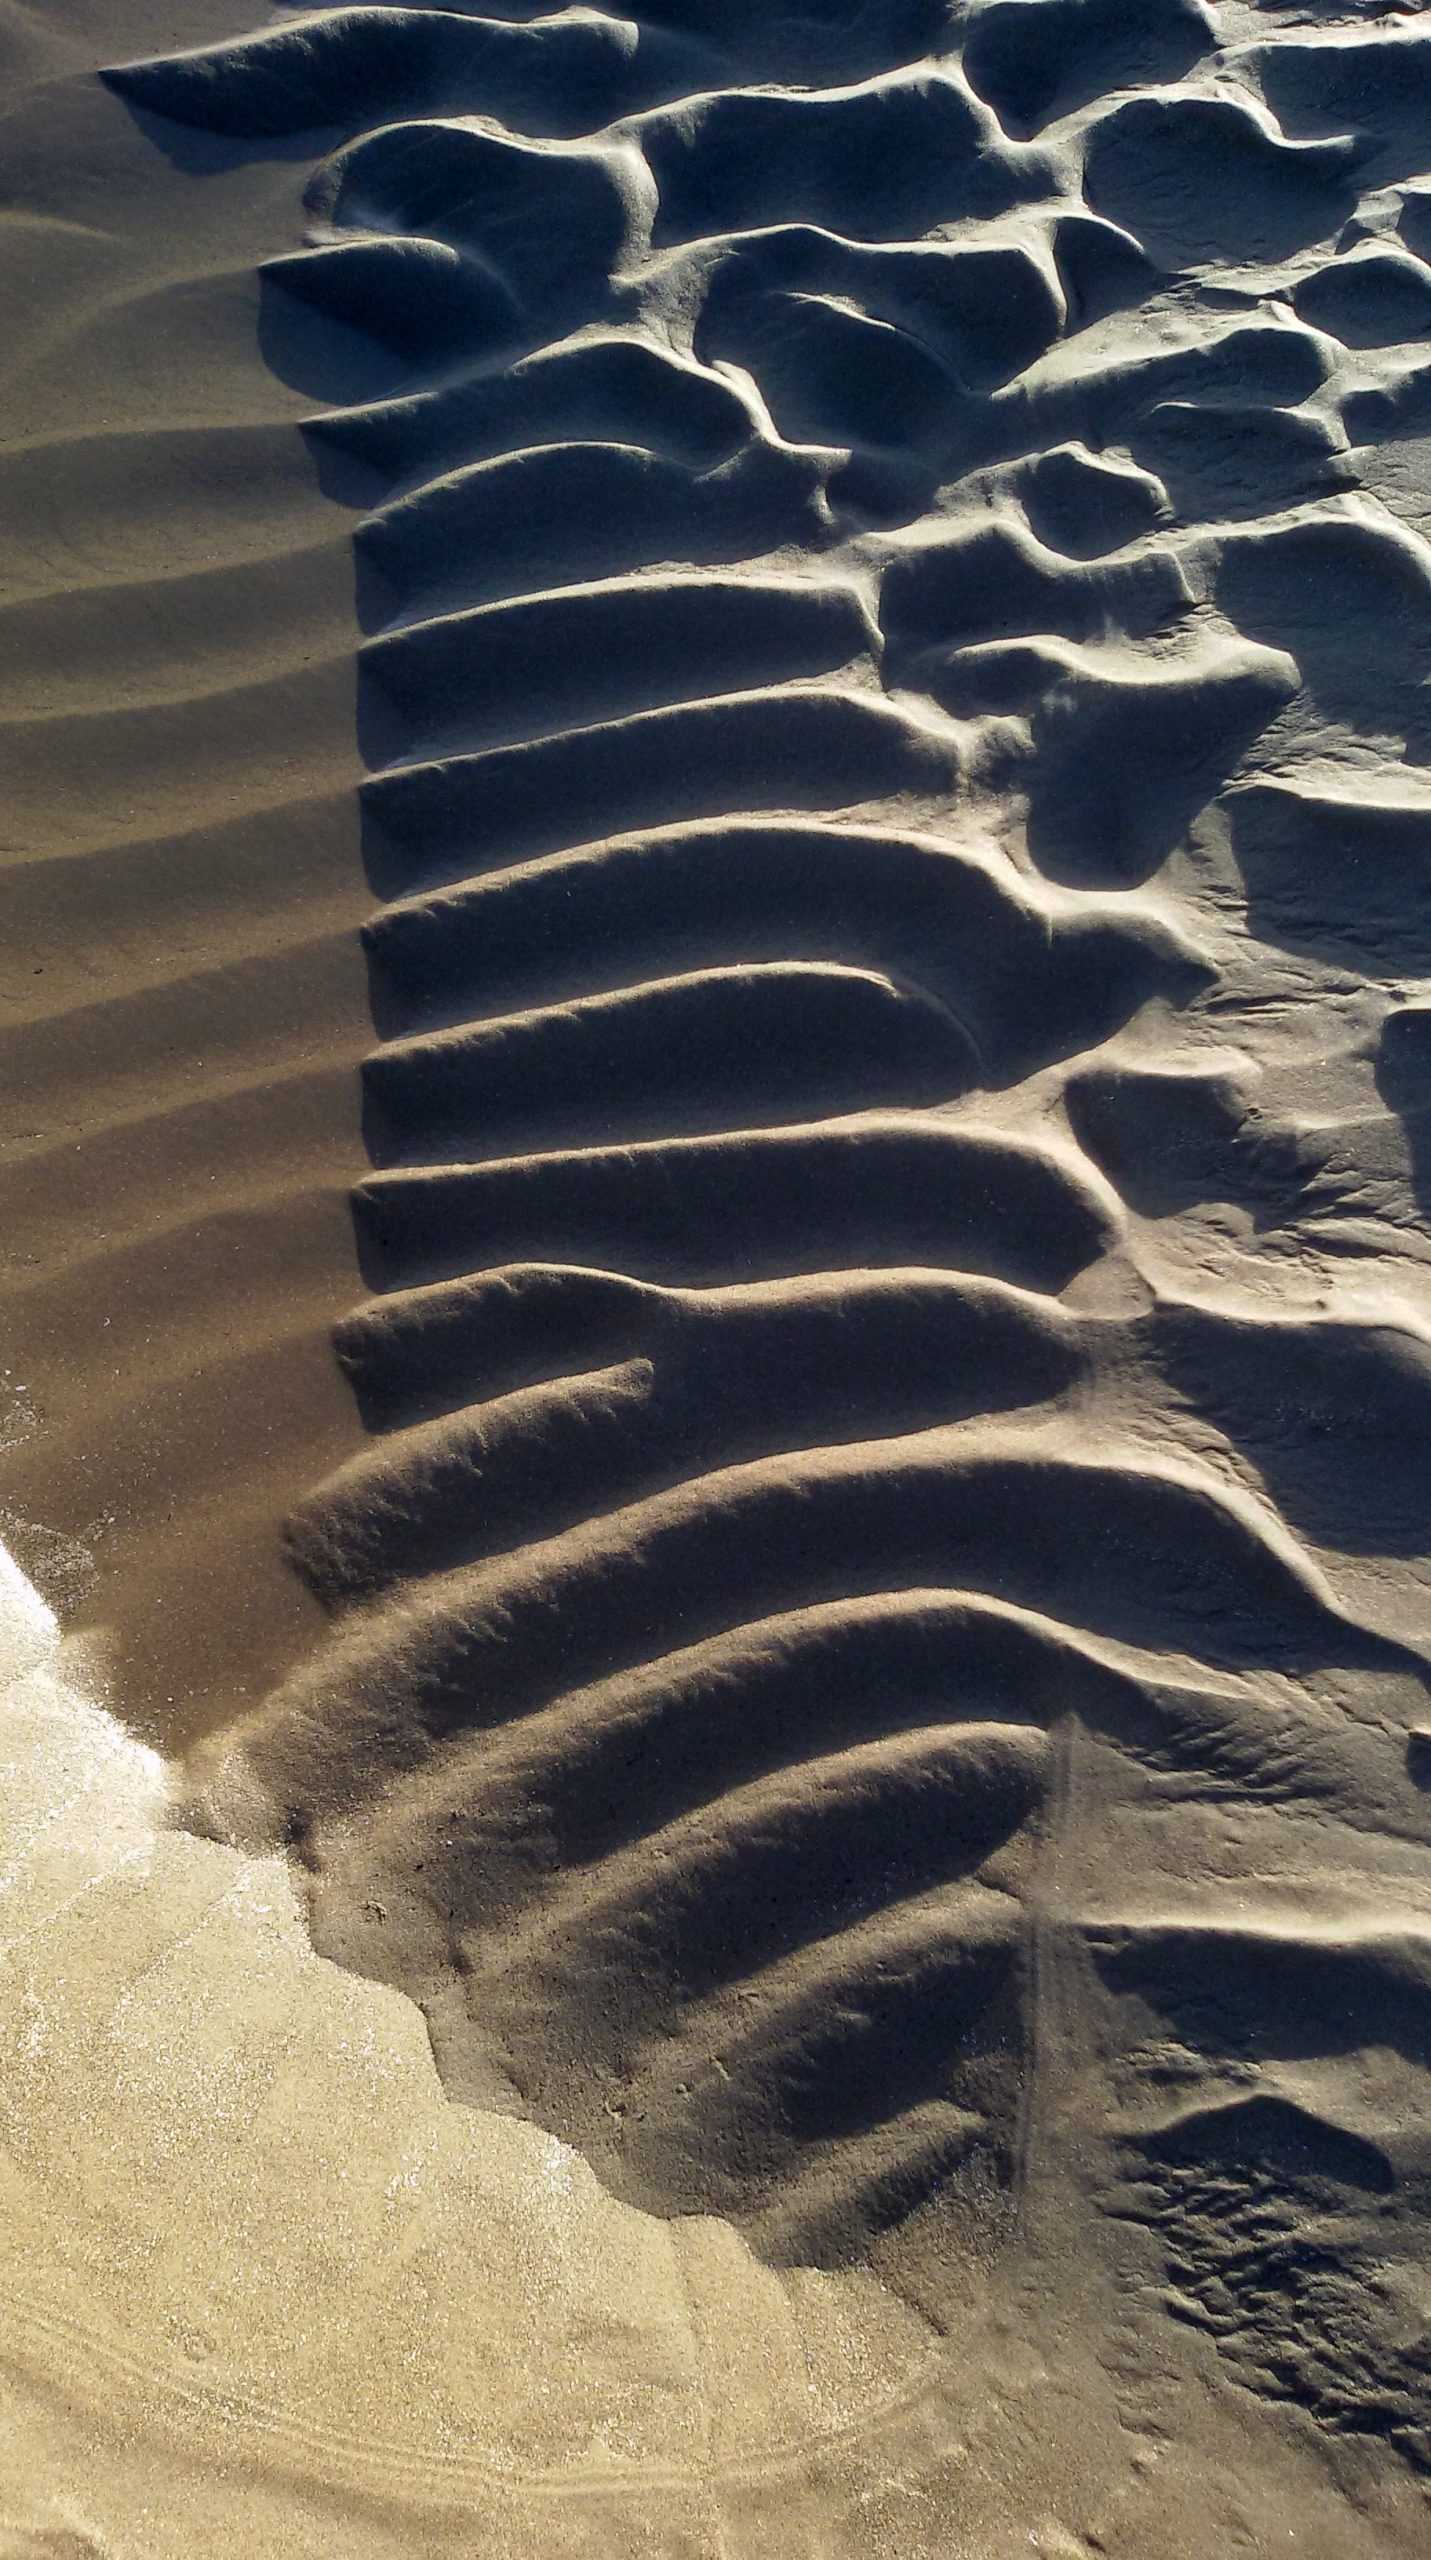 ribcage pattern in sand